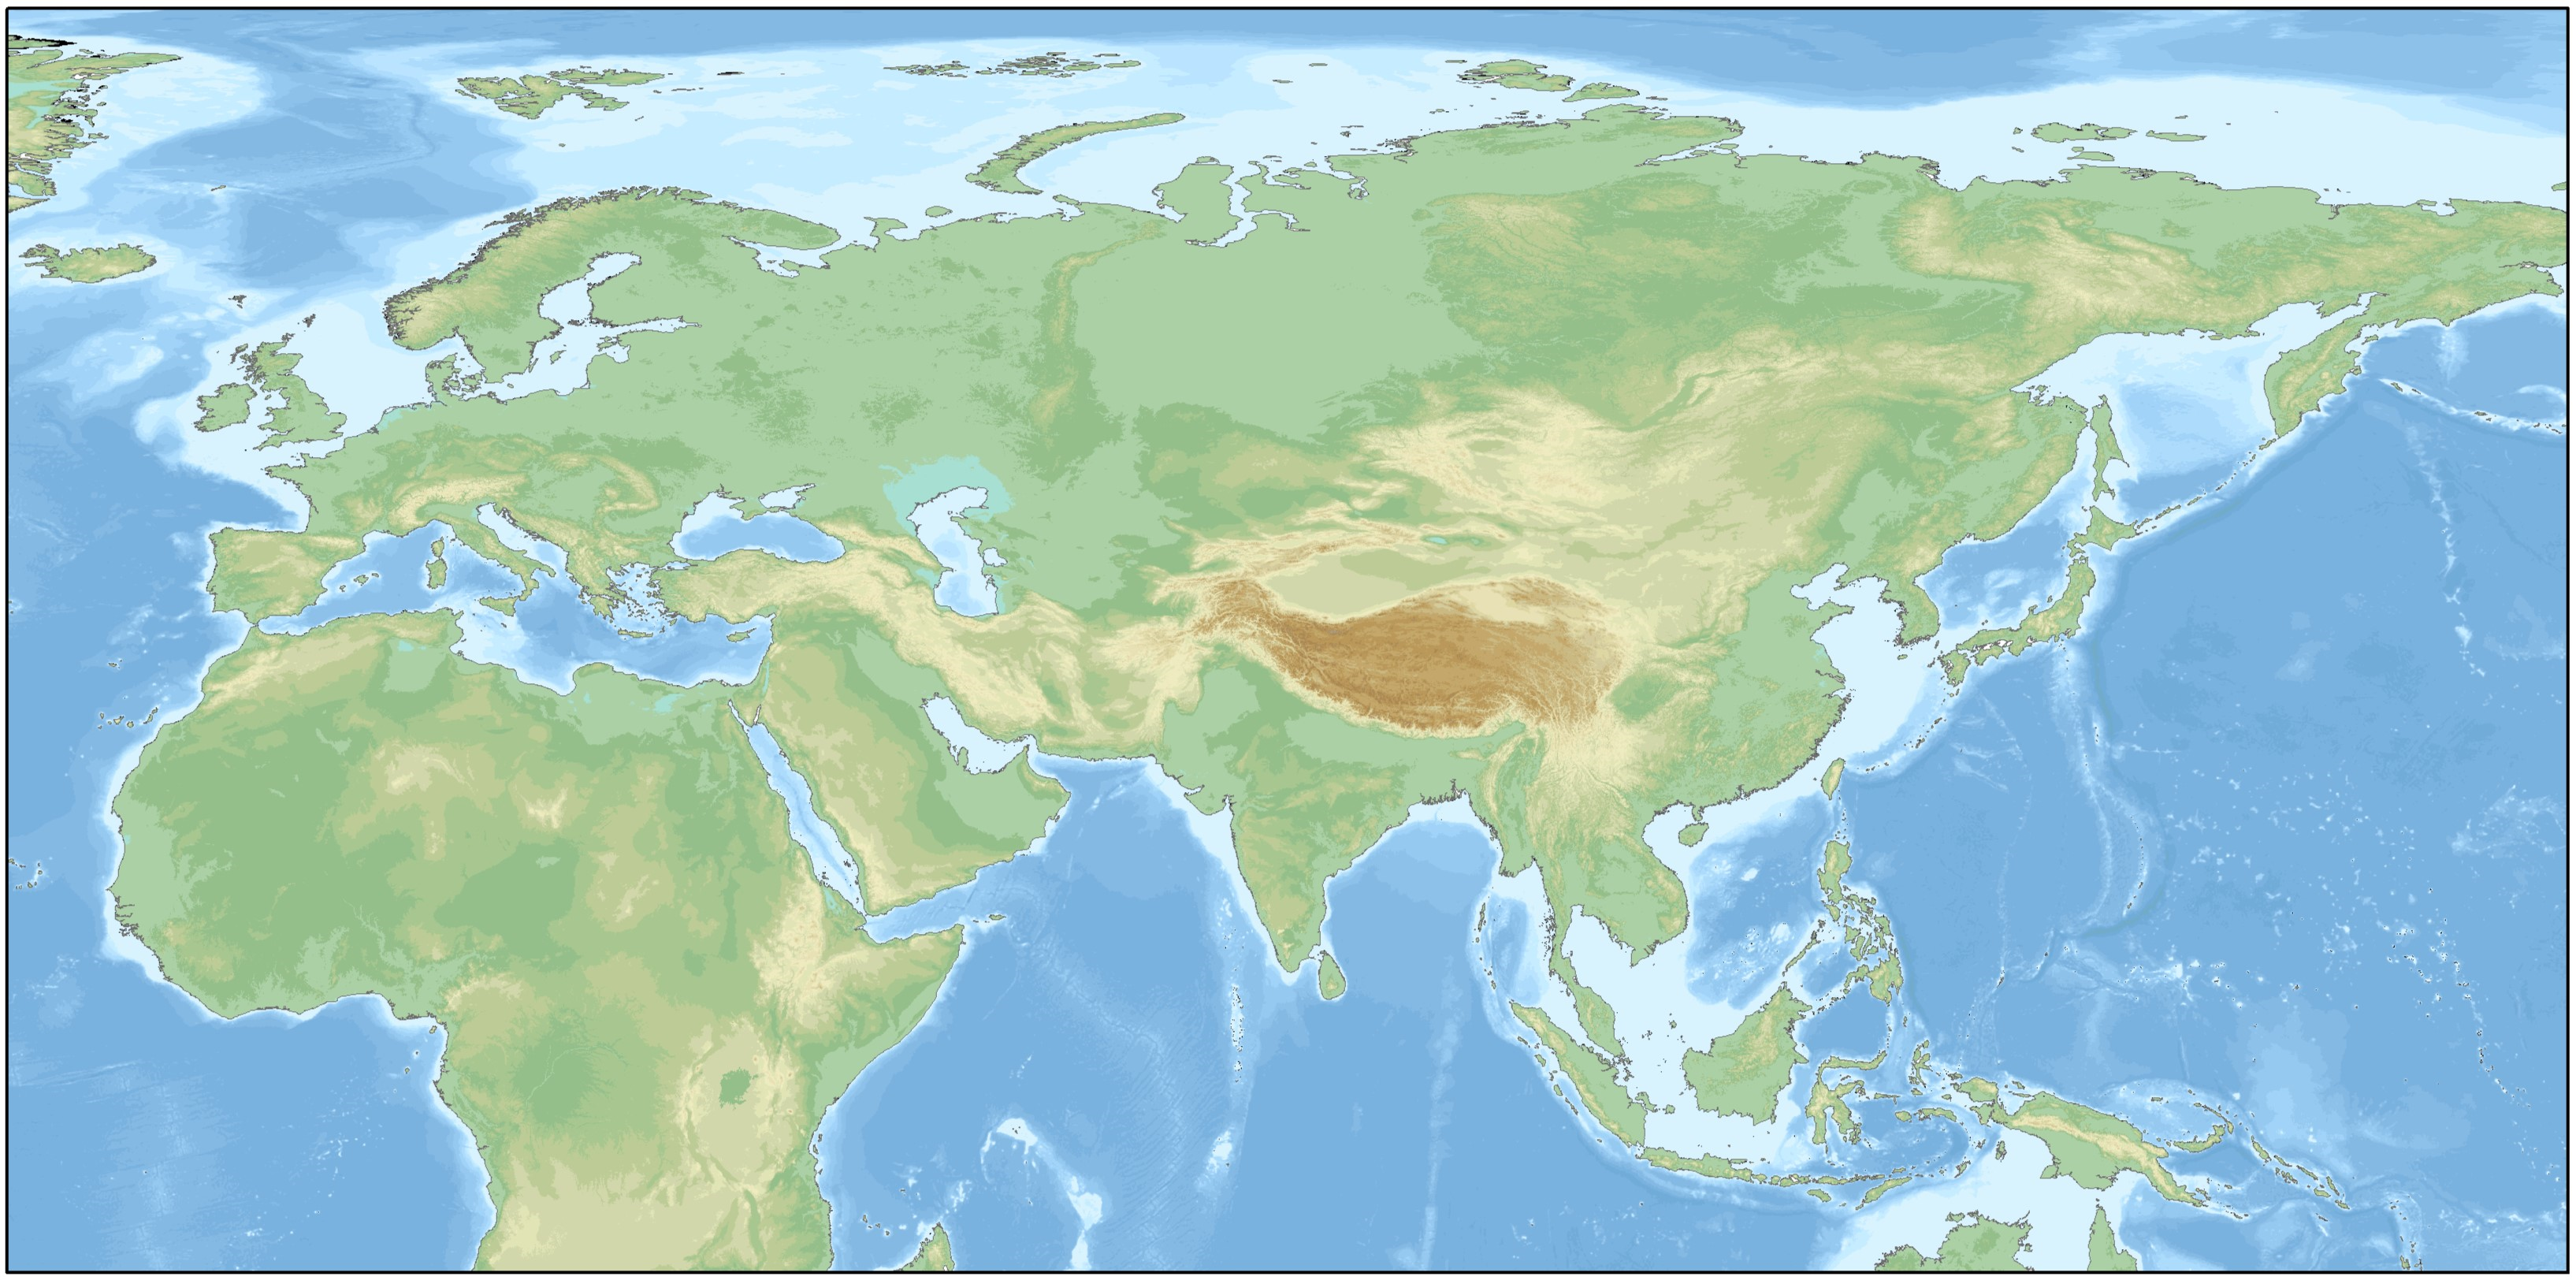 Map Of Eurasia File:Relief map of Eurasia.png   Wikimedia Commons Map Of Eurasia